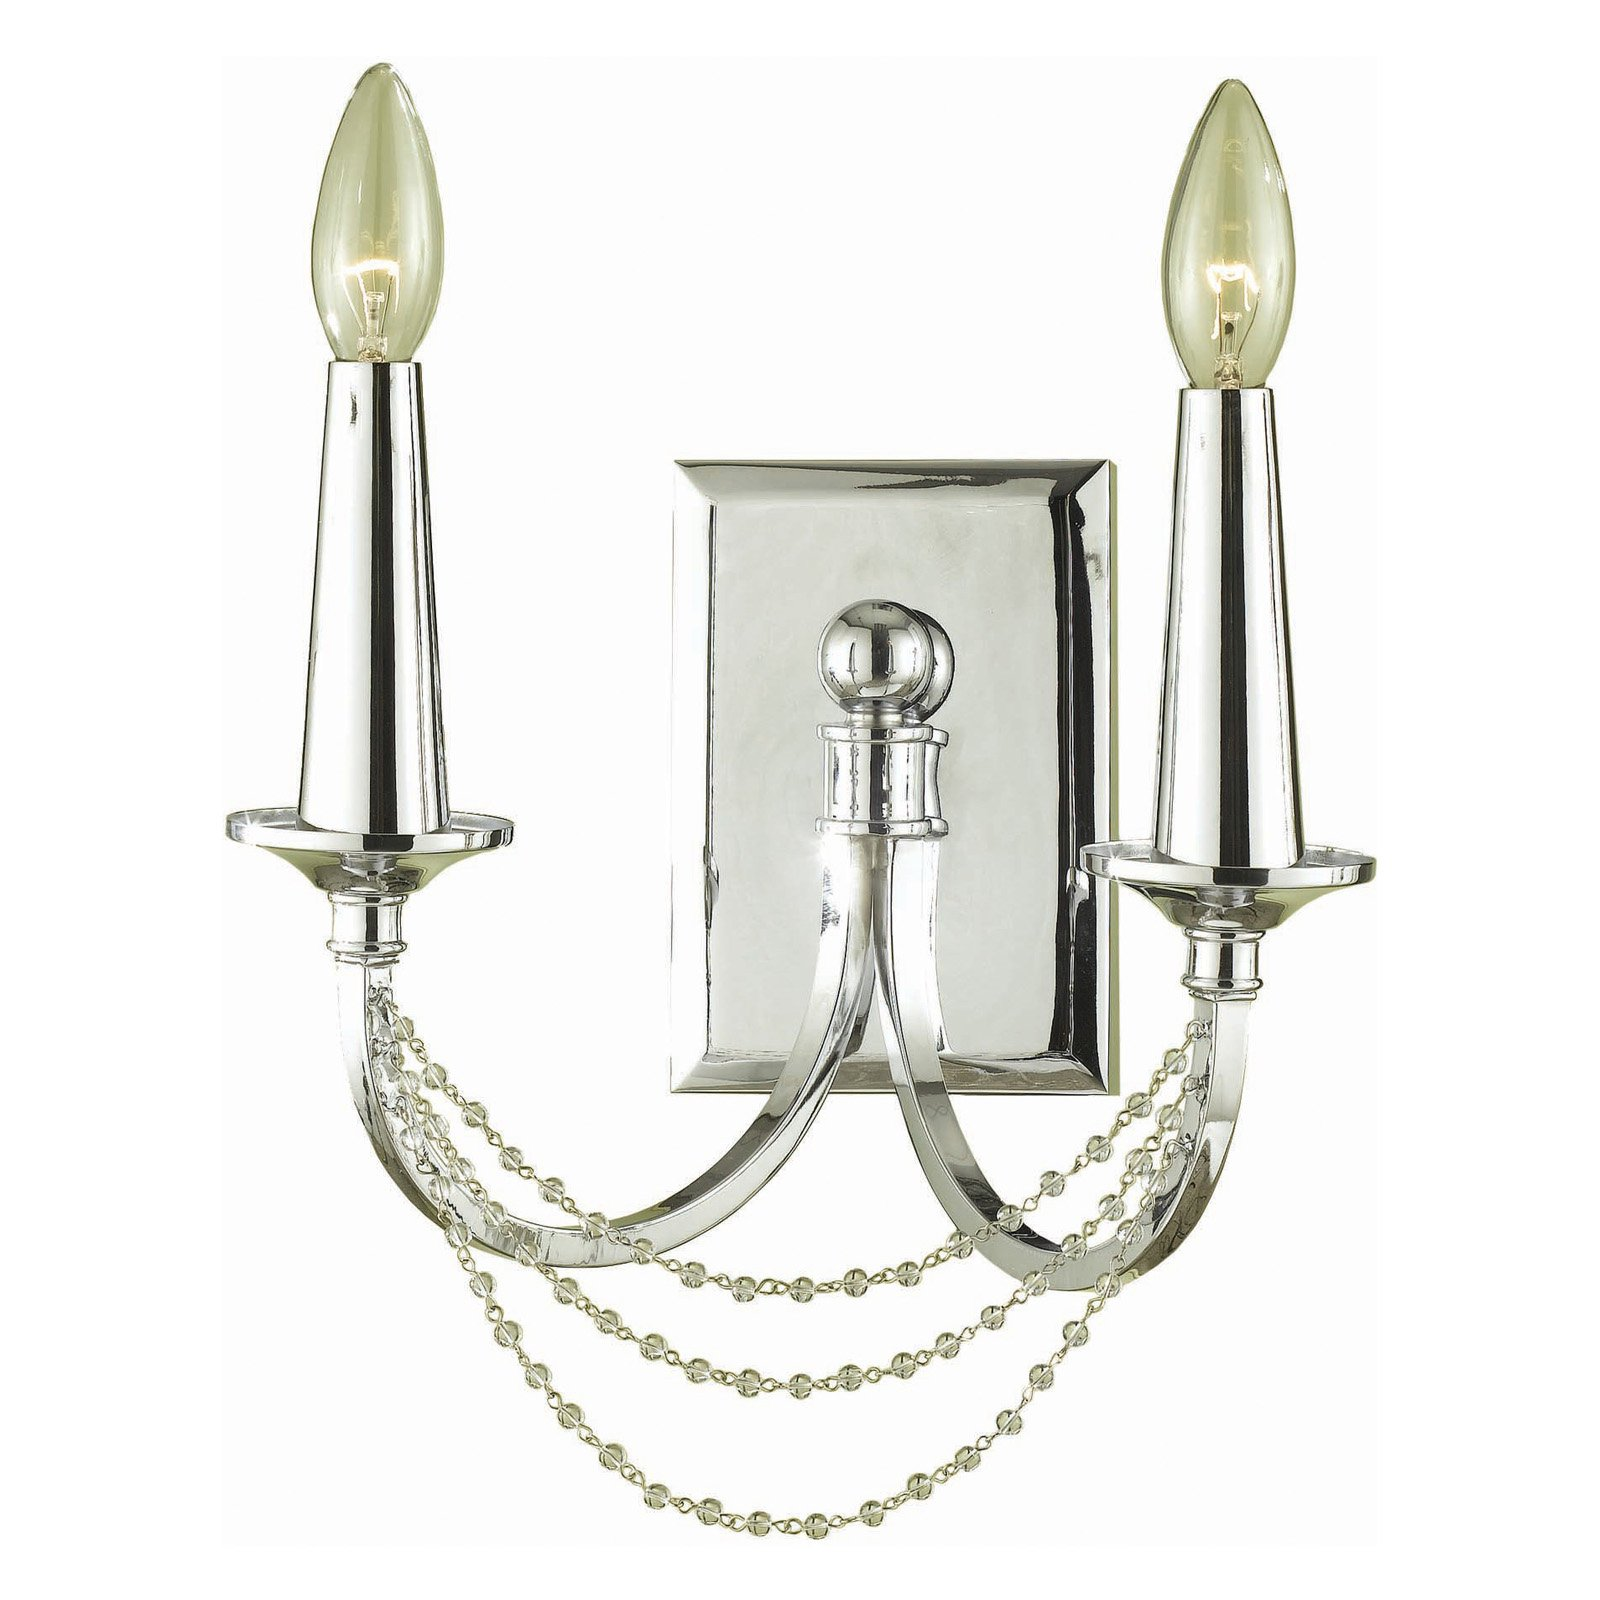 AF Lighting 7703 Two-Light Wall Sconce in Chrome